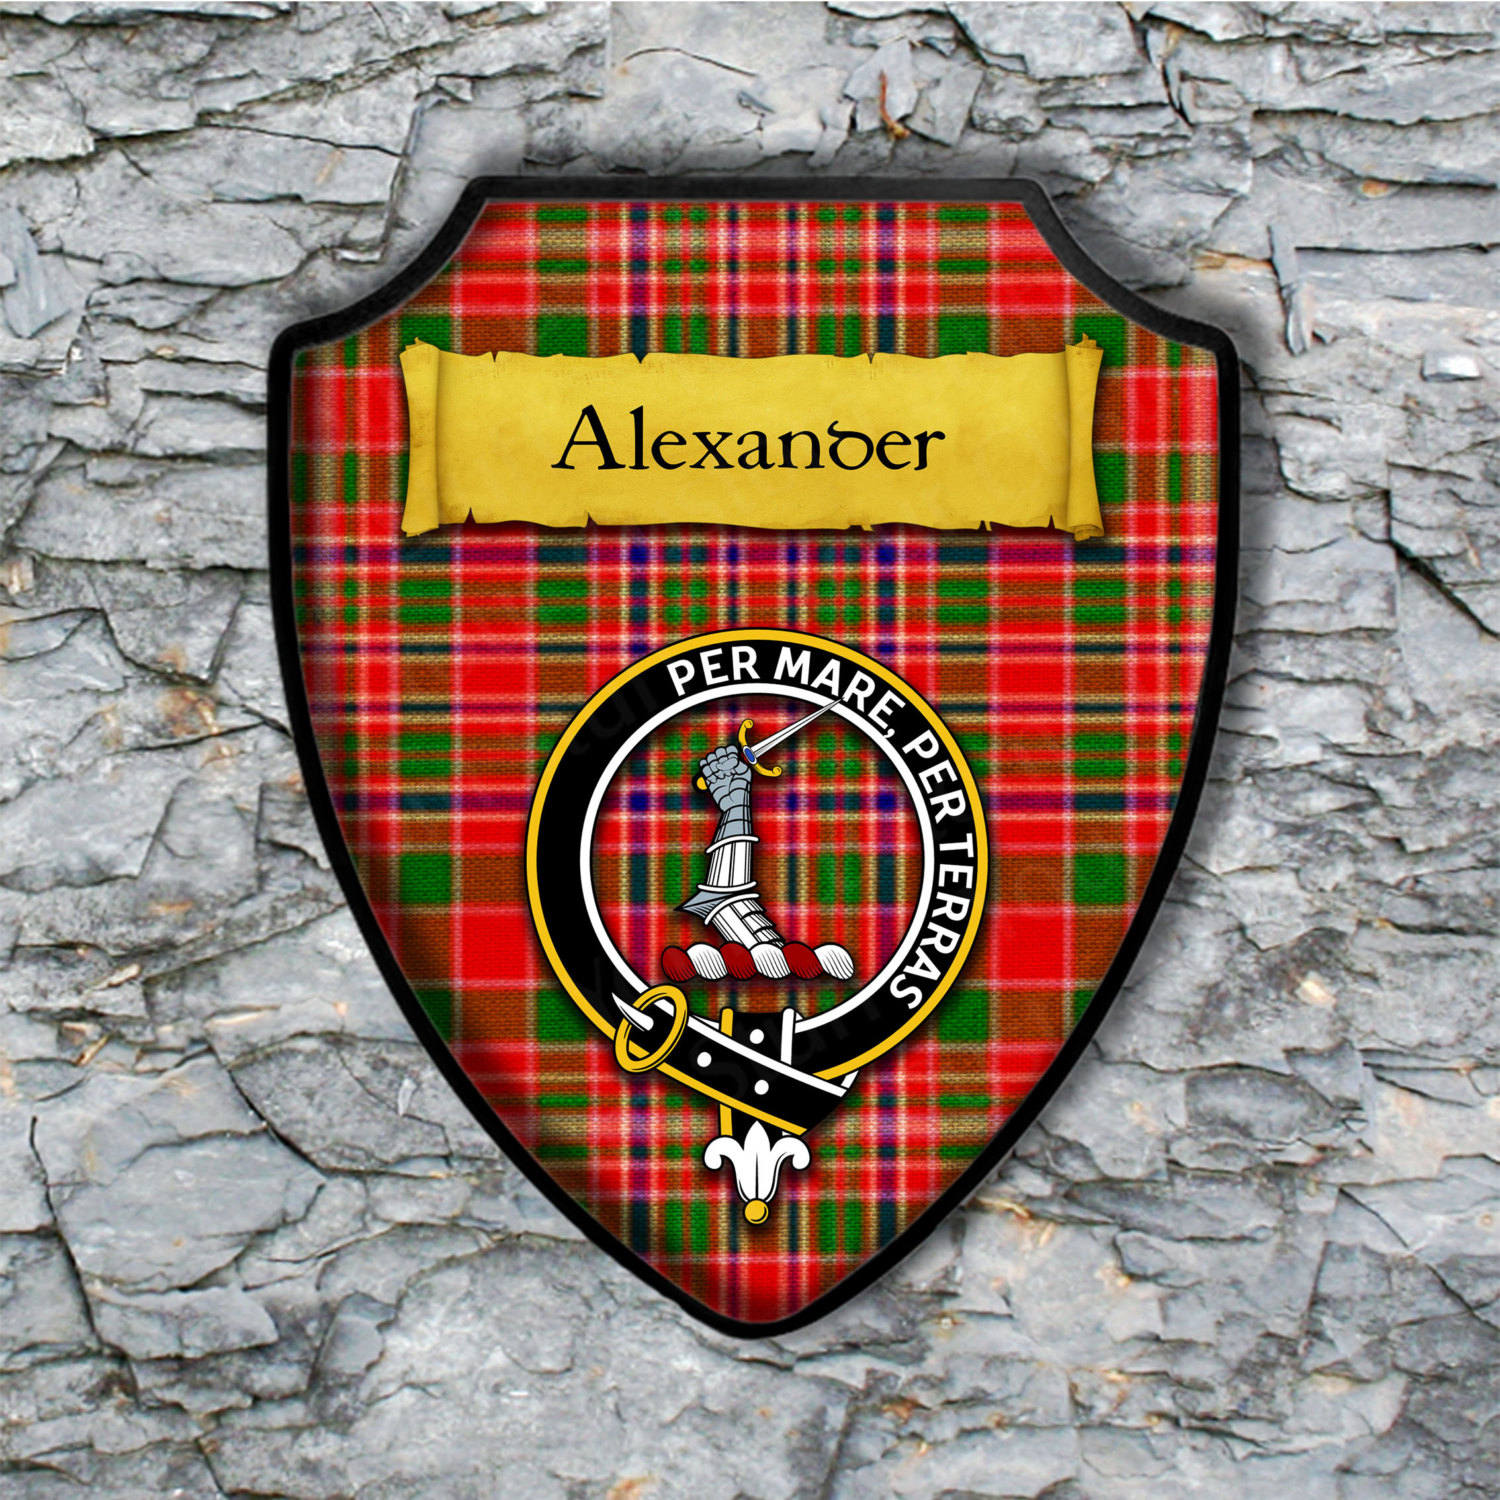 Alexander Clan MacAlister Sept Shield Plaque with Scottish Clan Coat of Arms Badge on Clan Plaid Tartan Background Wall Art